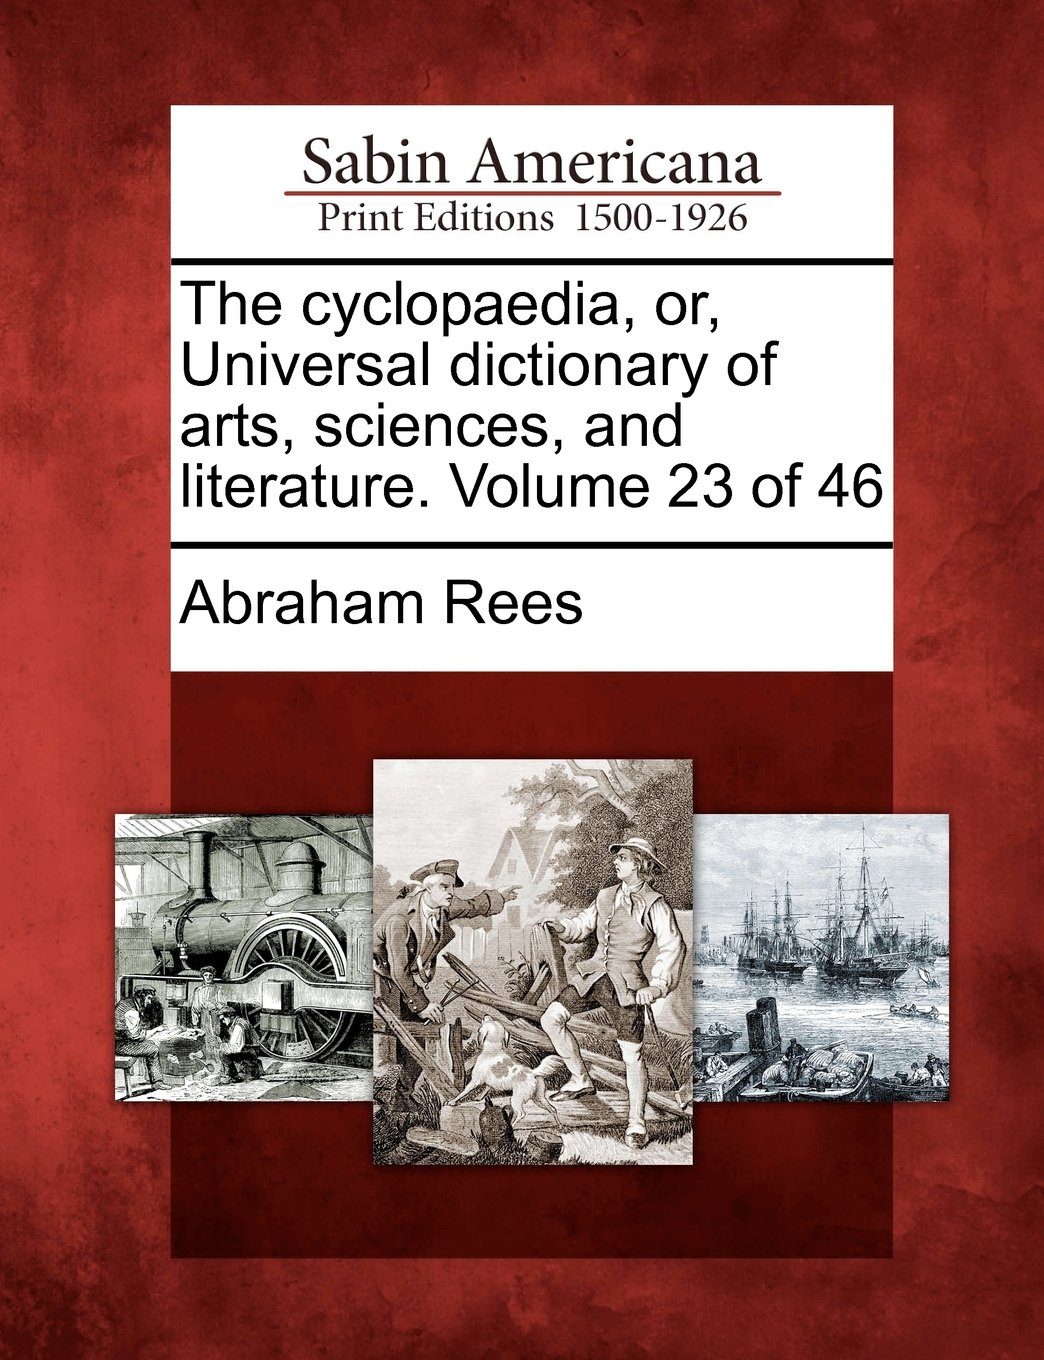 The cyclopaedia, or, Universal dictionary of arts, sciences, and literature. Volume 23 of 46 pdf